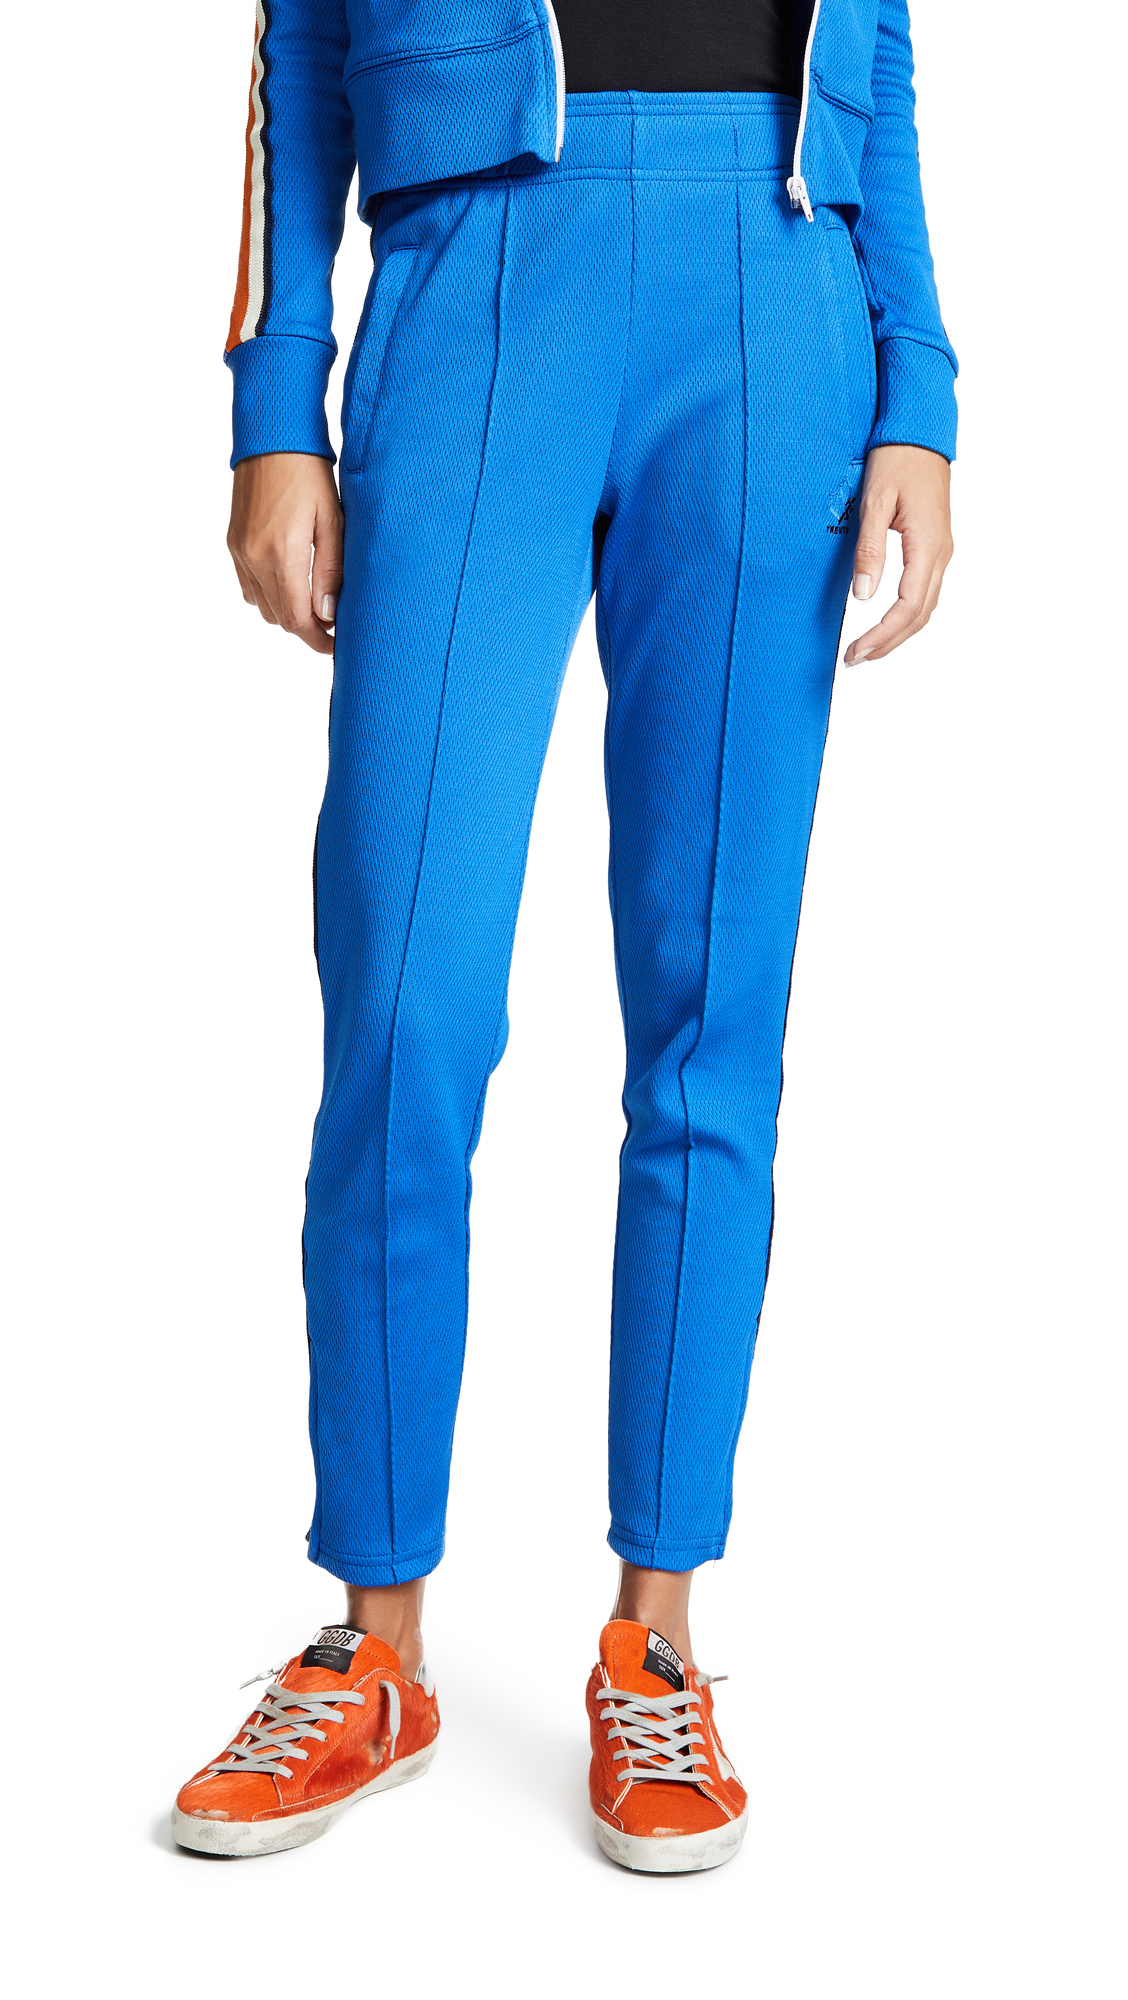 TWENTY MONTREAL Olympic Mesh Zip Ankle Track Pants - Cobalt/Orange